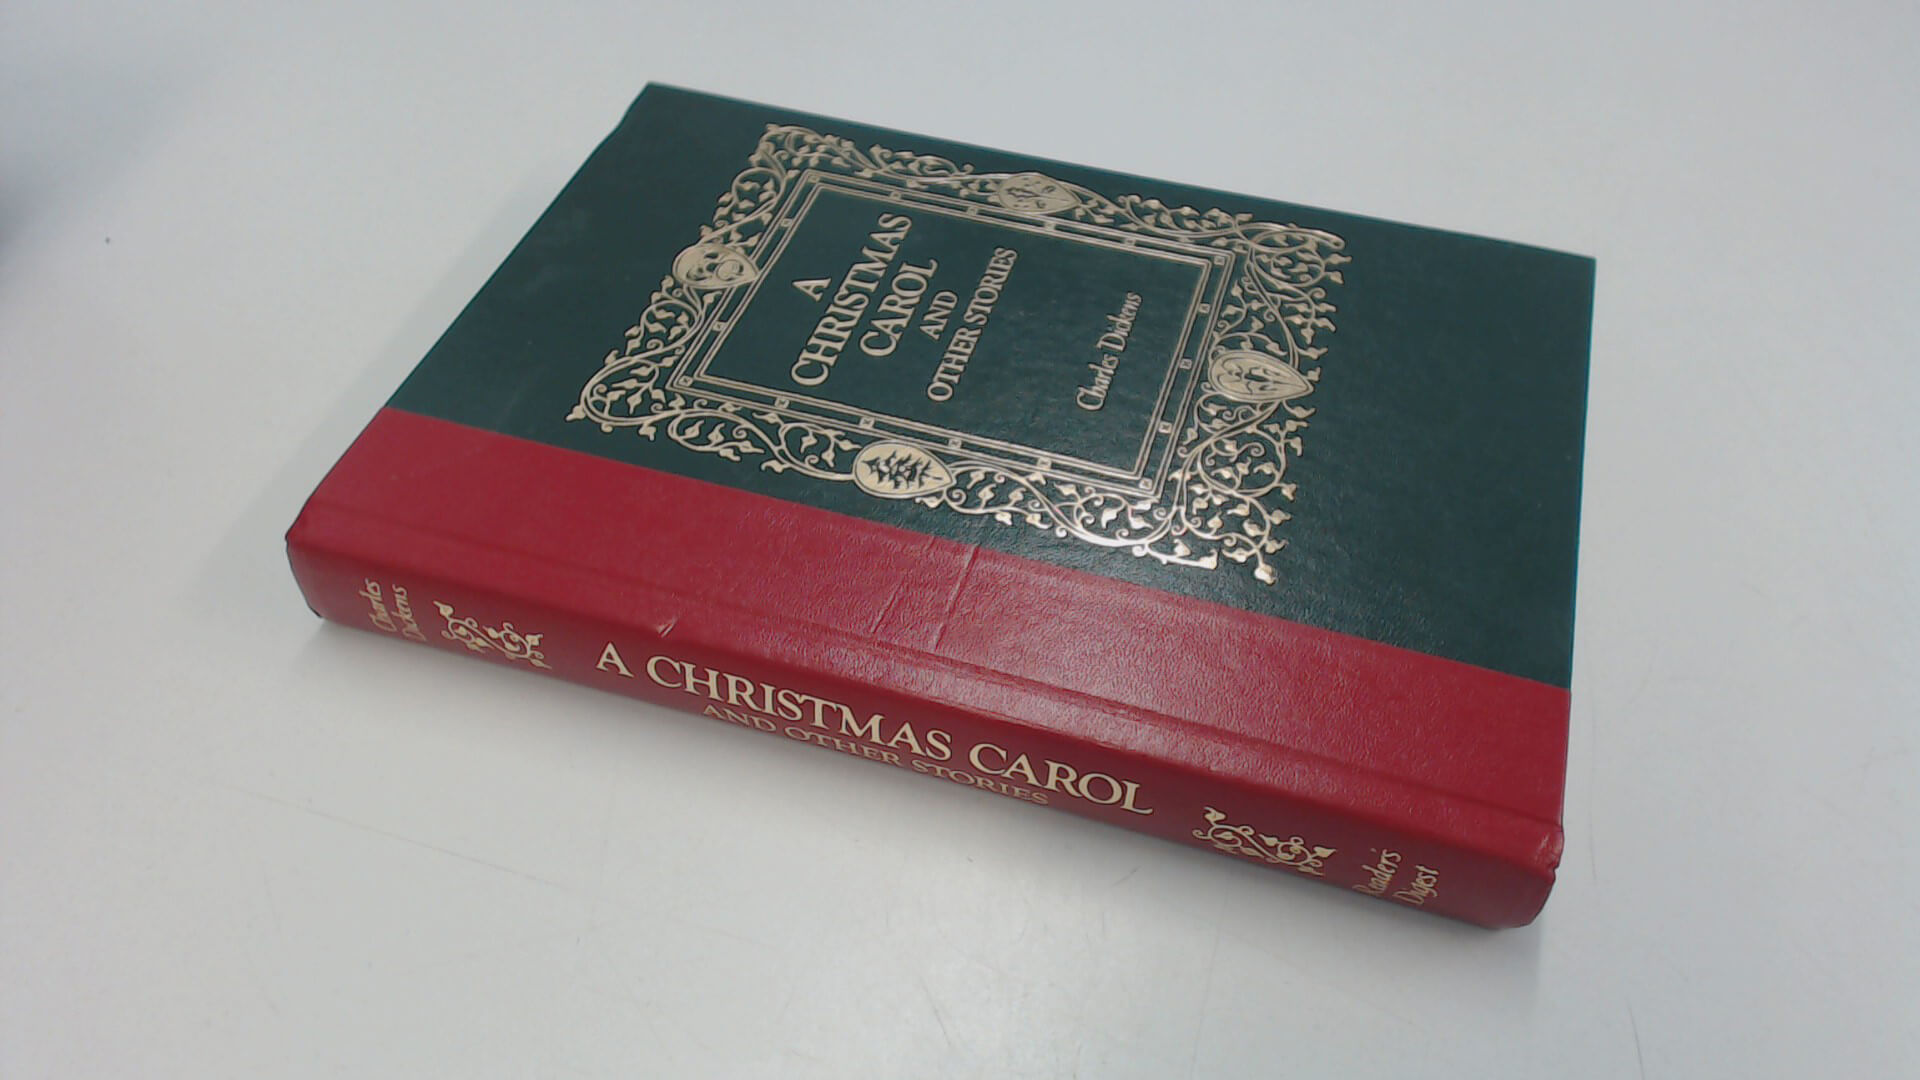 Christmas Carol and other stories Charles Dickens